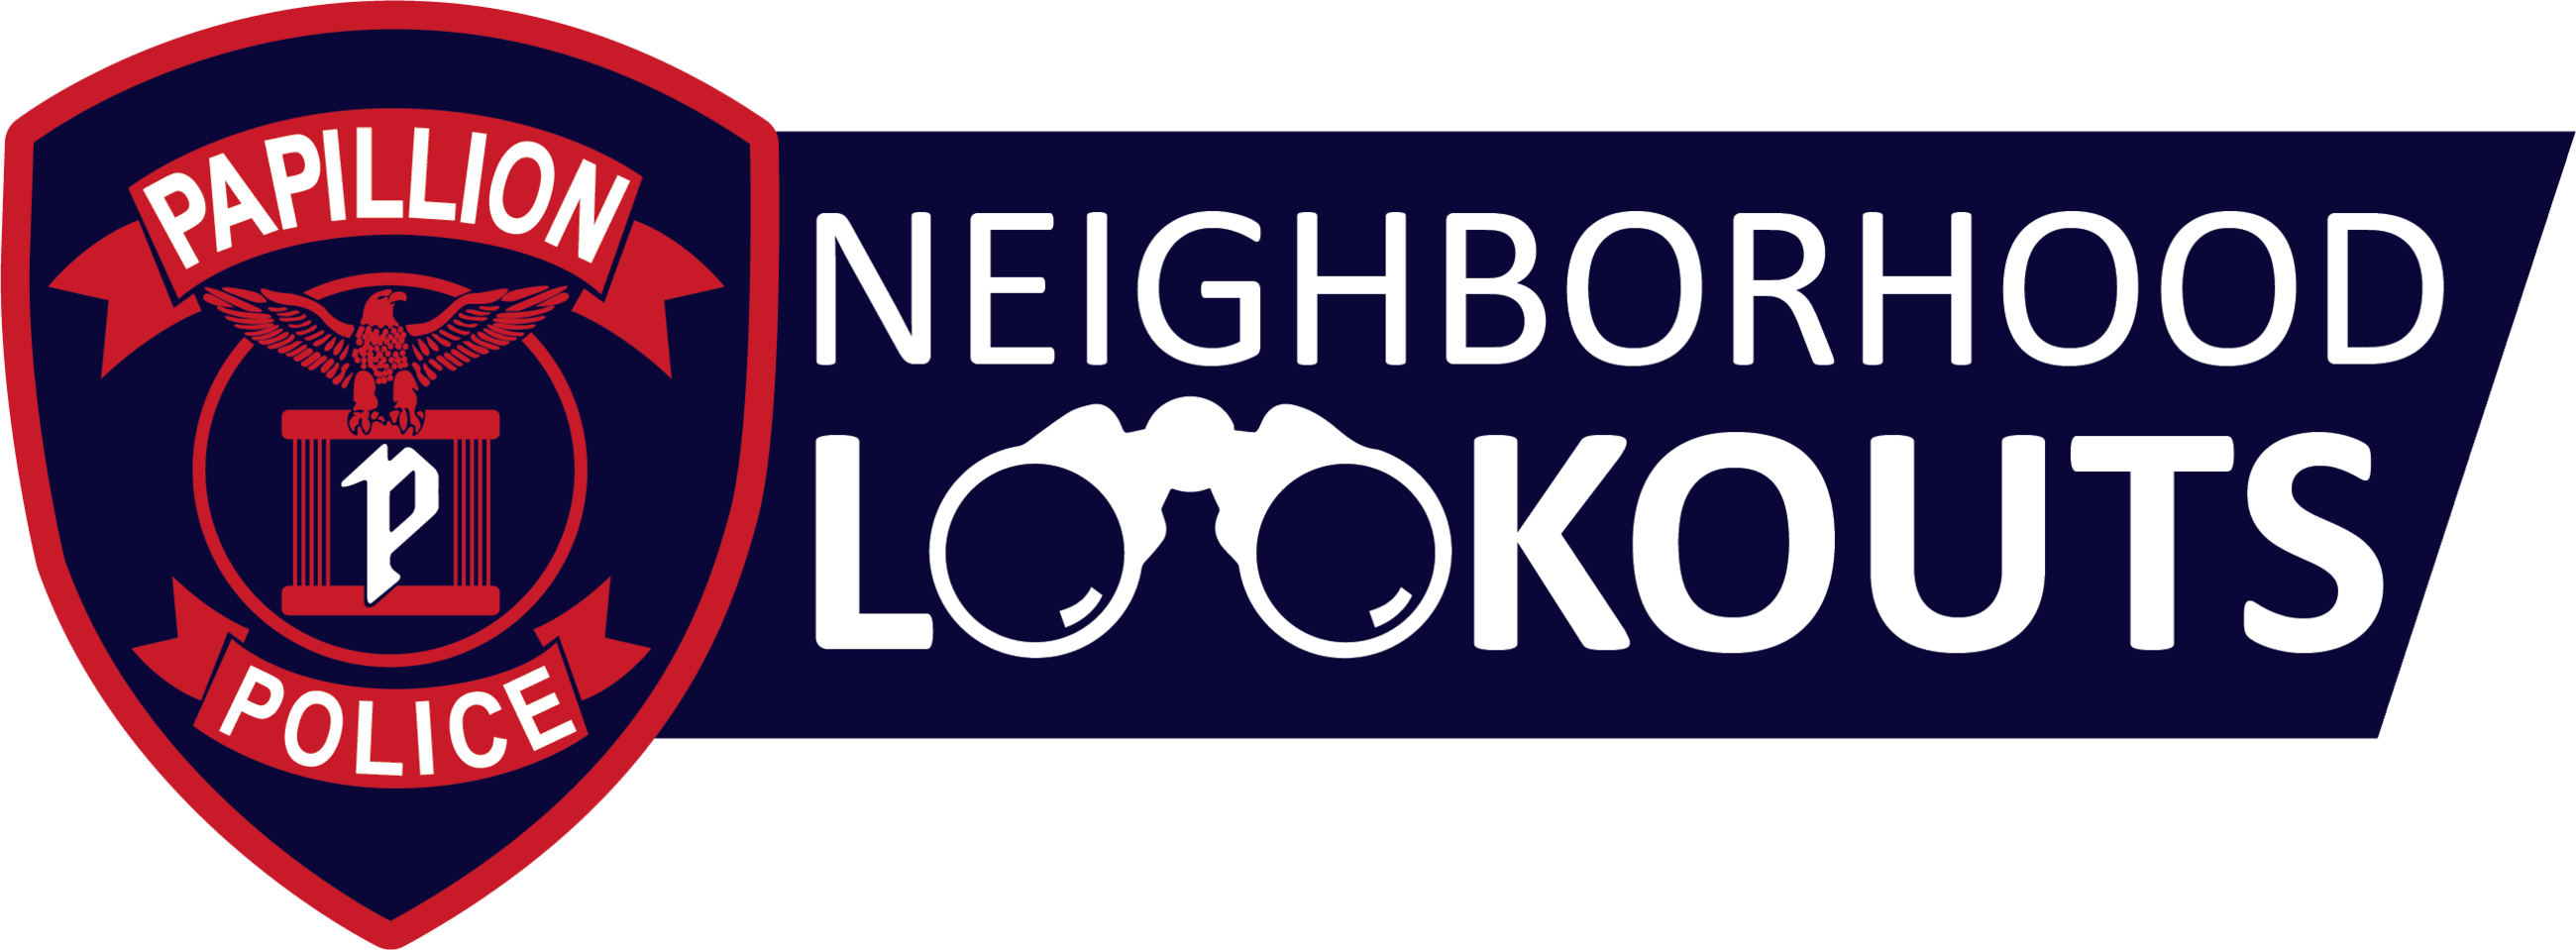 Neighborhood Lookouts graphic.PNG